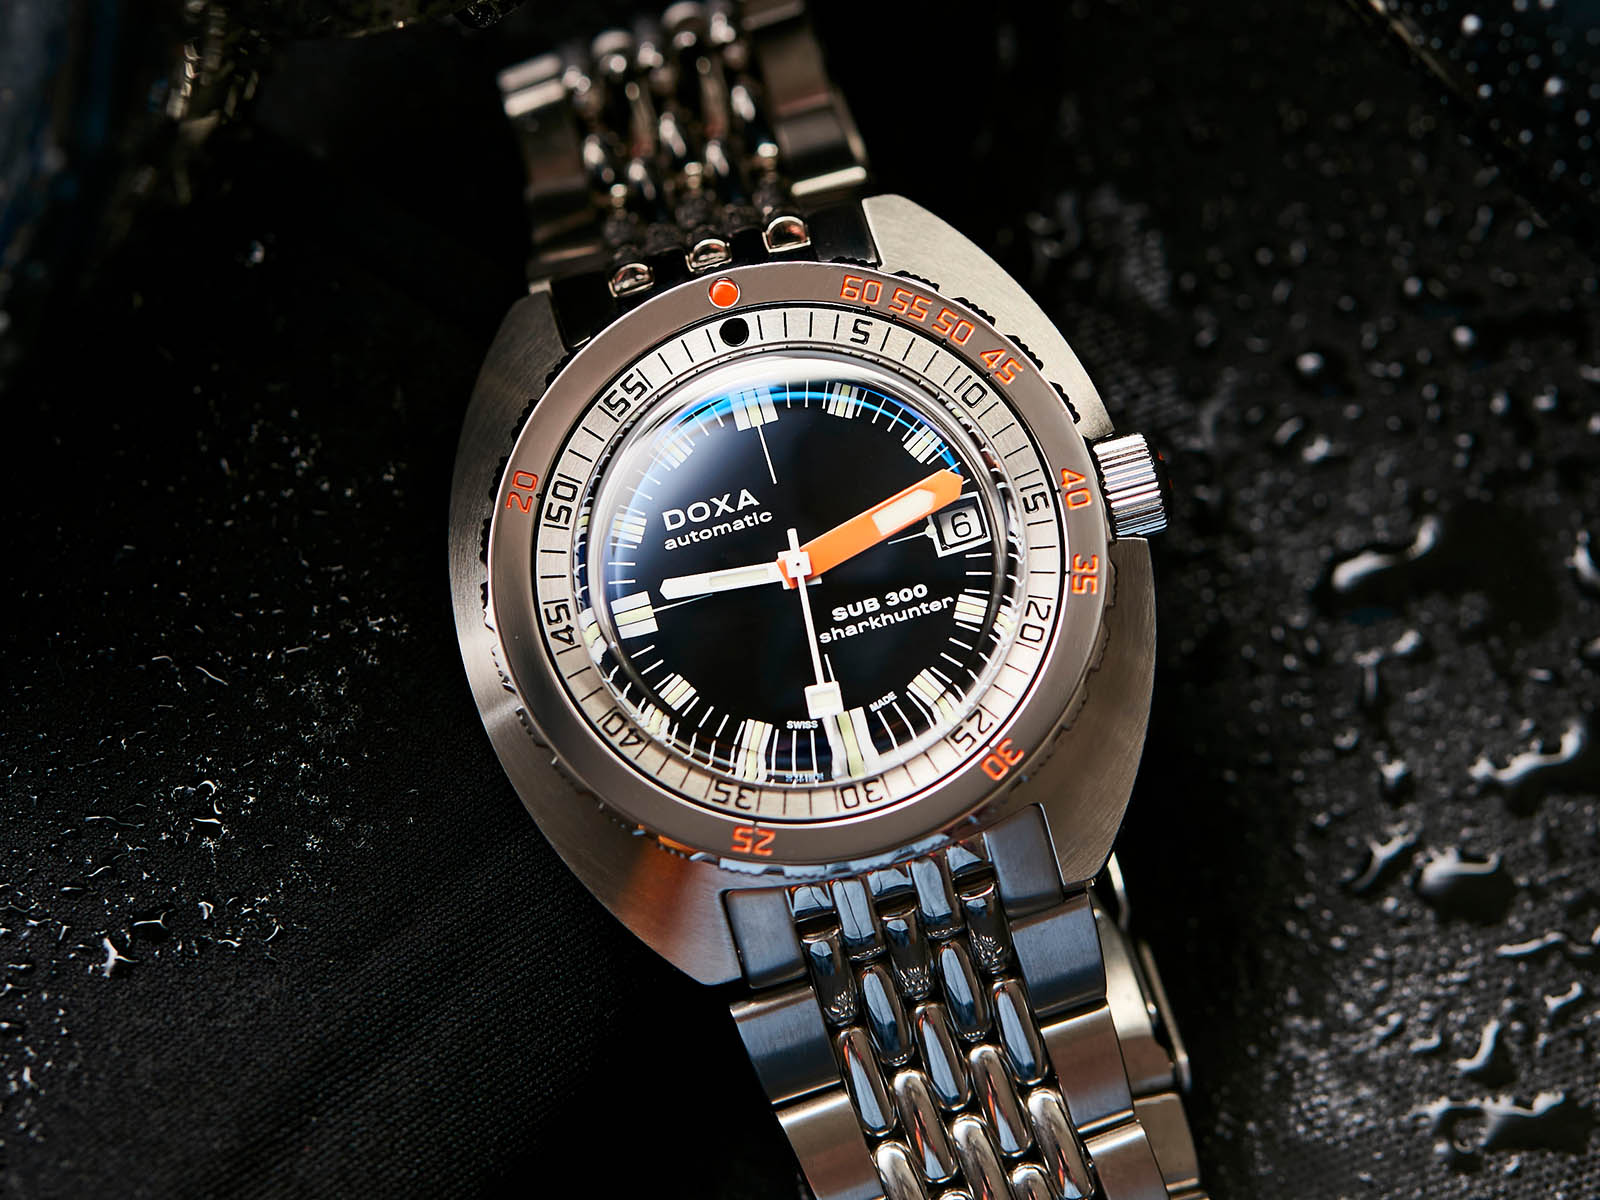 821-10-101-10-doxa-sub300-black-sharkhunter-1.jpg